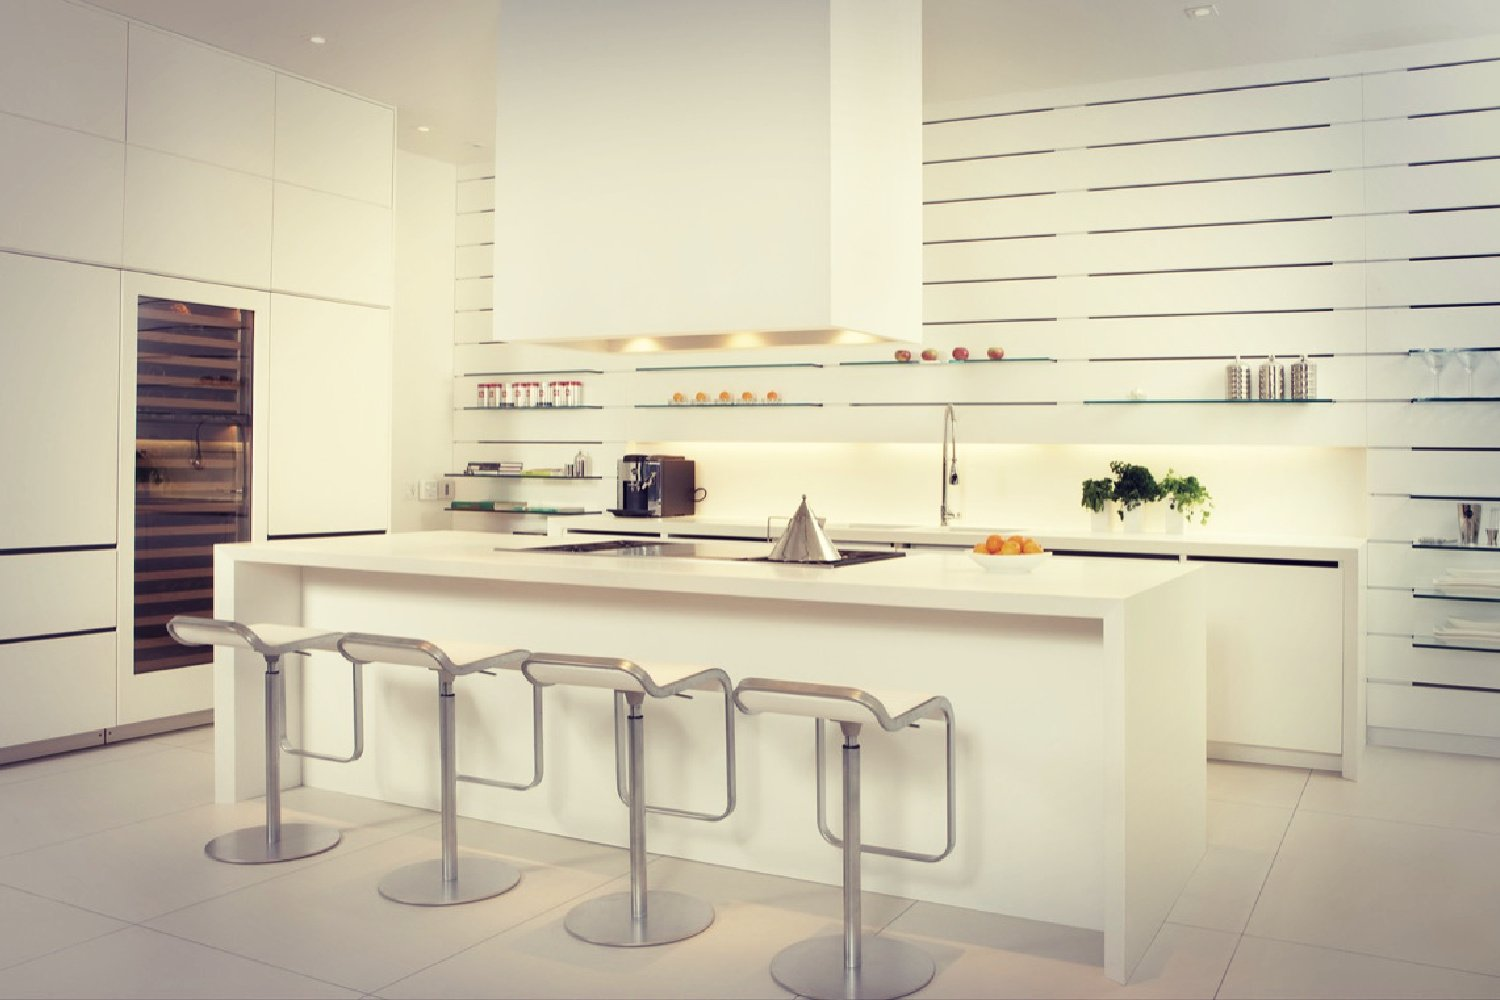 10 HOME DESIGN TRENDS FOR 2021 WITH INSPIRATIONAL INTERIORS…